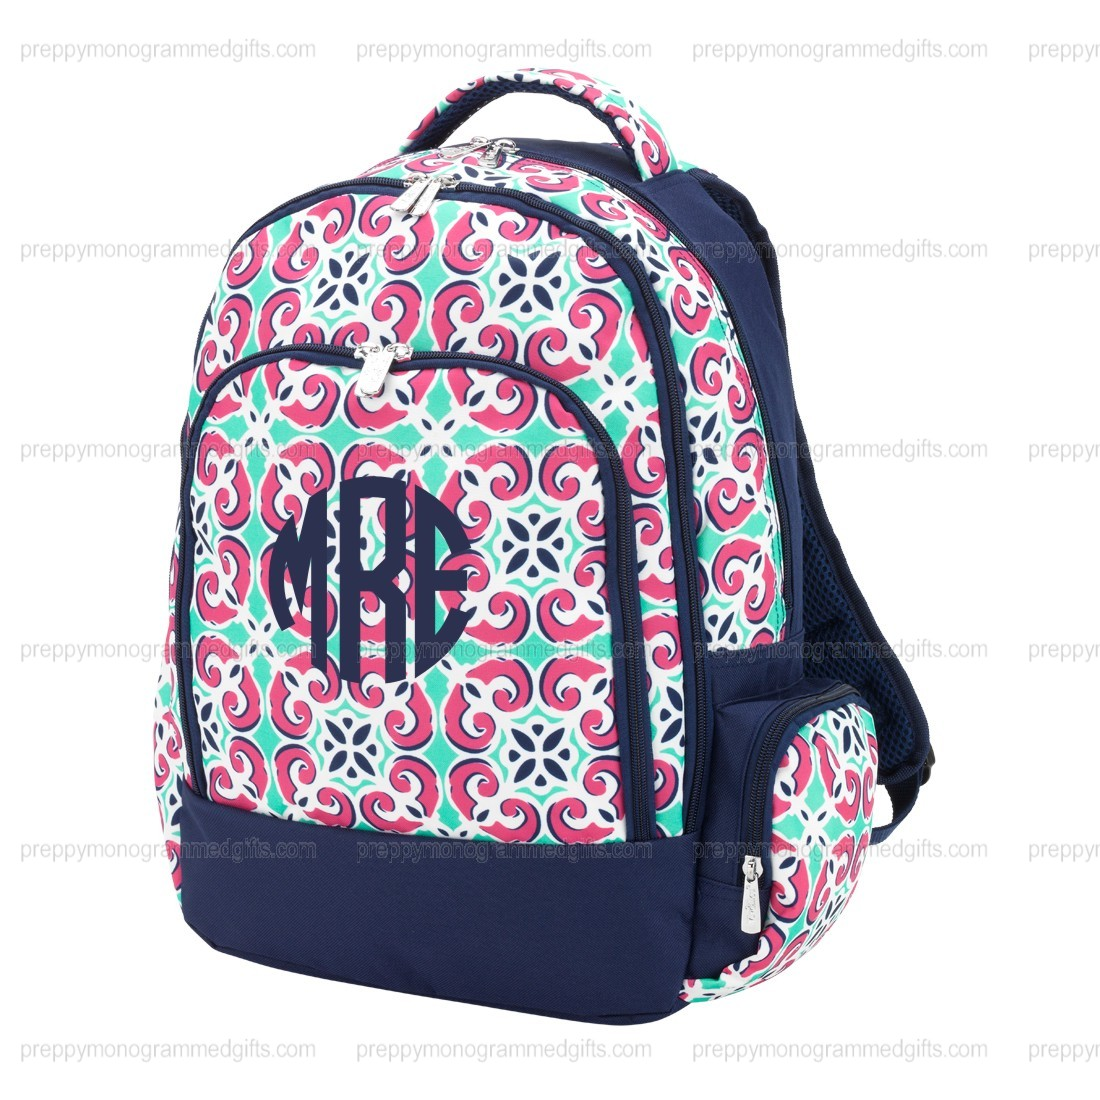 Monogrammed Backpacks For Girls kJDIO0CG